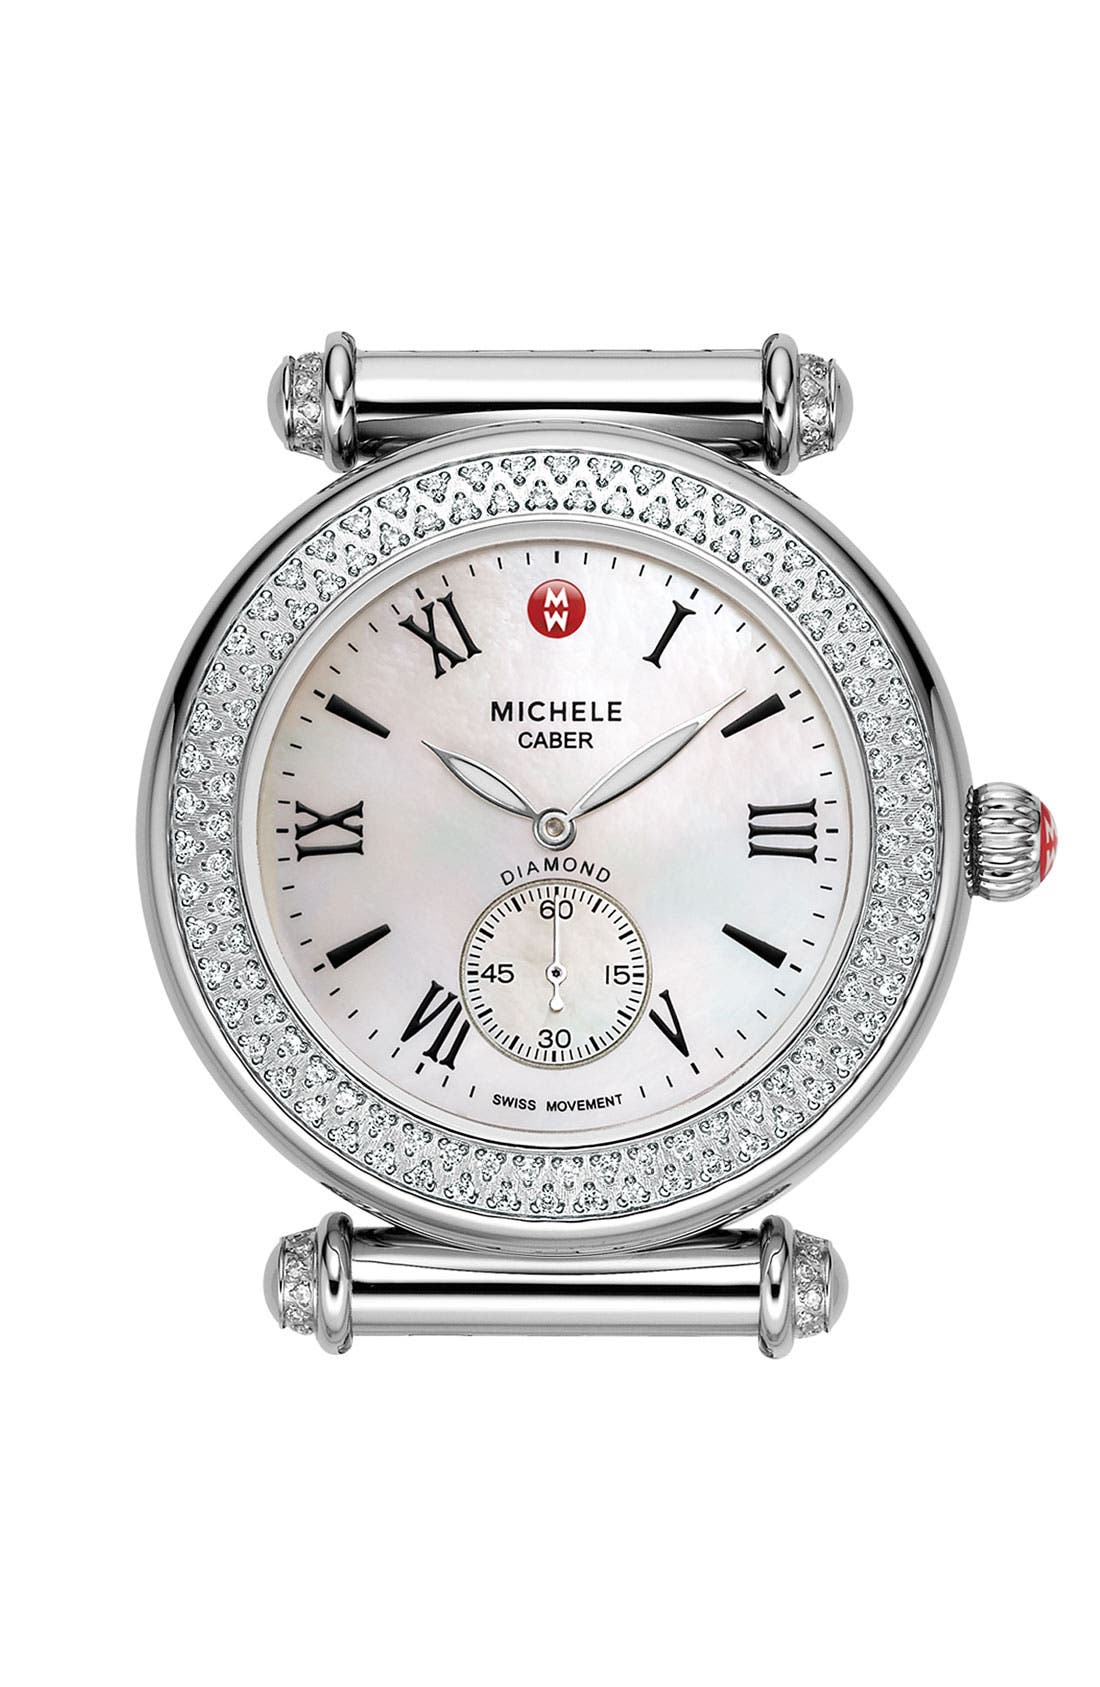 Alternate Image 1 Selected - MICHELE 'Caber' Diamond Customizable Watch